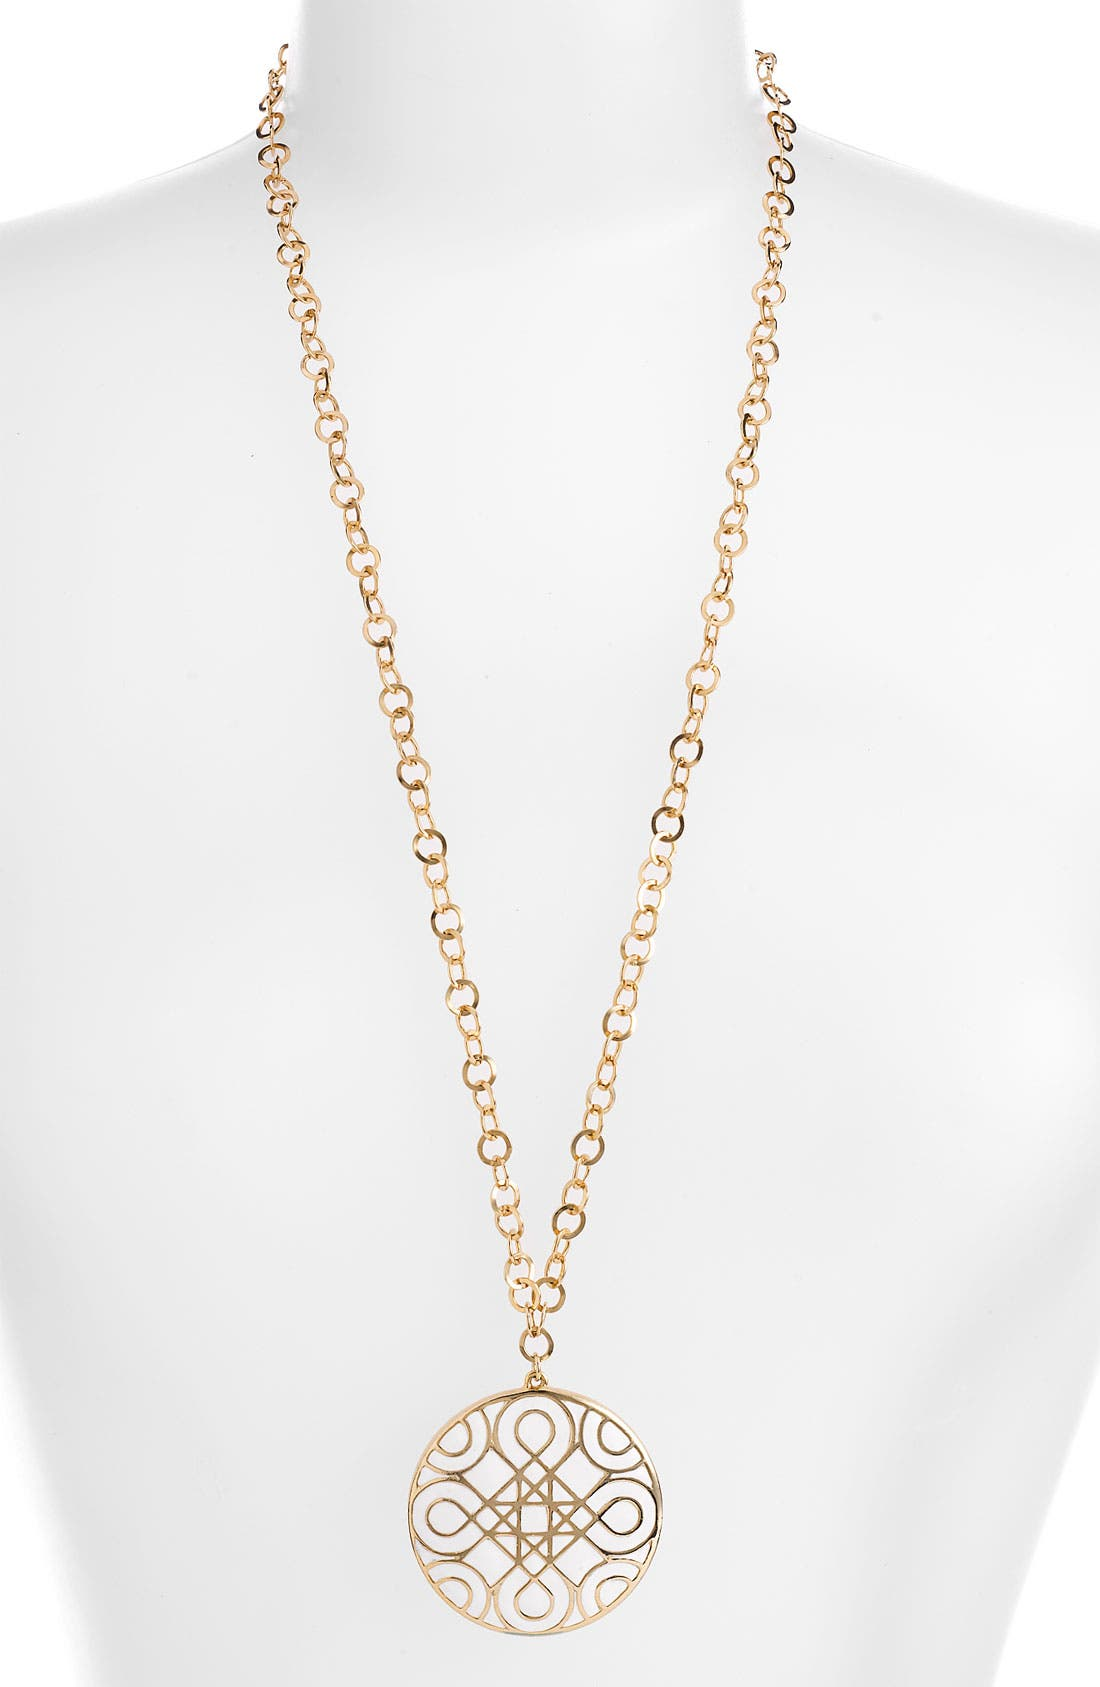 Main Image - Nordstrom 'Eclectic Mosaic' Long Statement Pendant Necklace